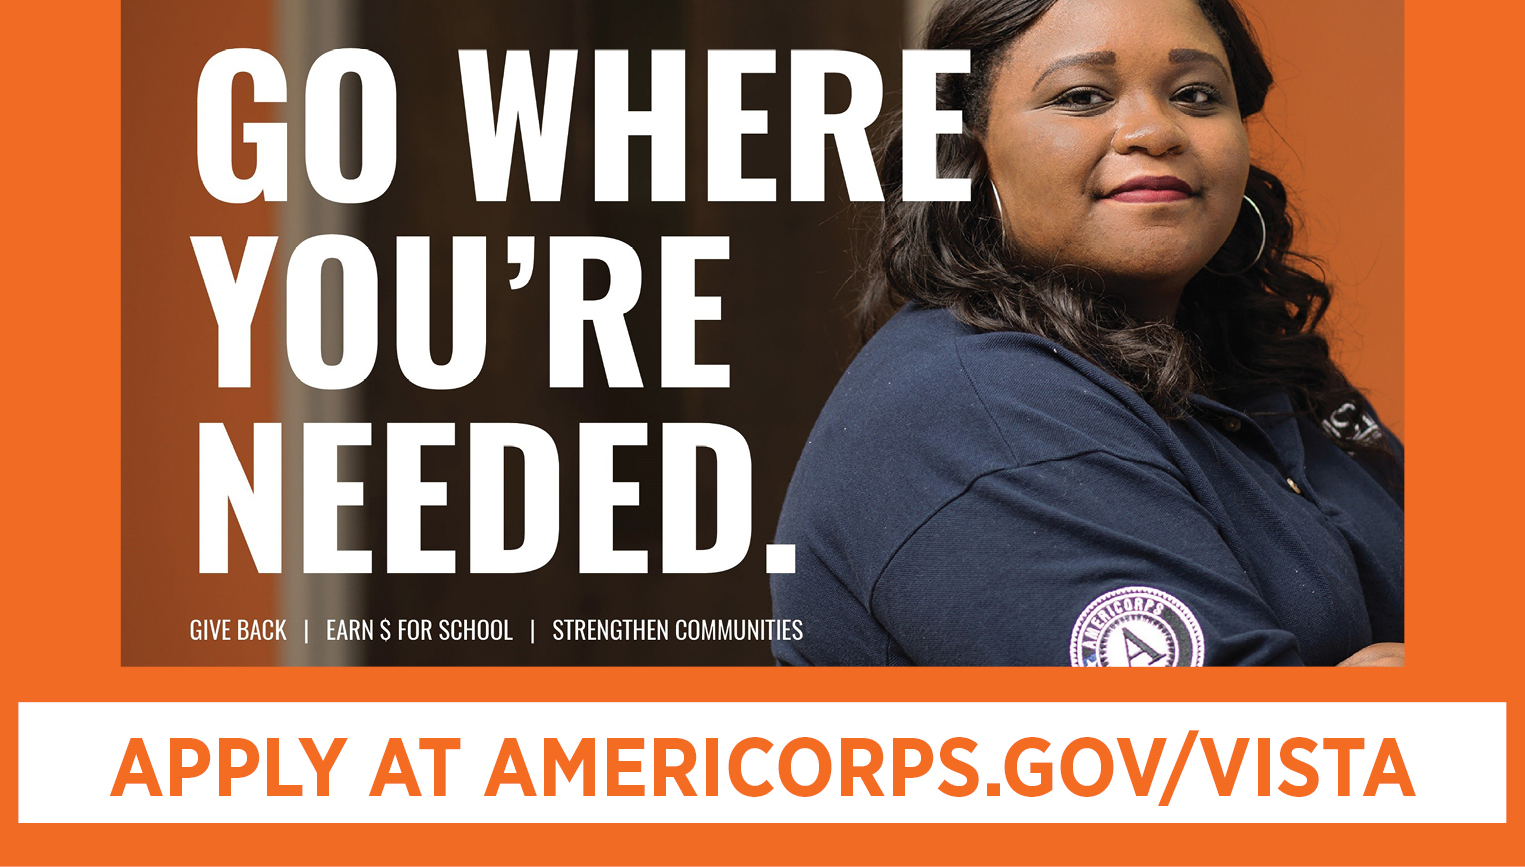 LOCAL OPPORTUNITY: Join CGTC in our fight to end poverty. Our four TEAMS Outreach Center Student Resource Specialist positions will focus on community and economic development, community outreach, and education.   APPLY AT AMERICORPS.GOV/VISTA. CONTACT: Kennethia Westbrook | kwestbrook@centralgatech.edu | (478) 218-3314